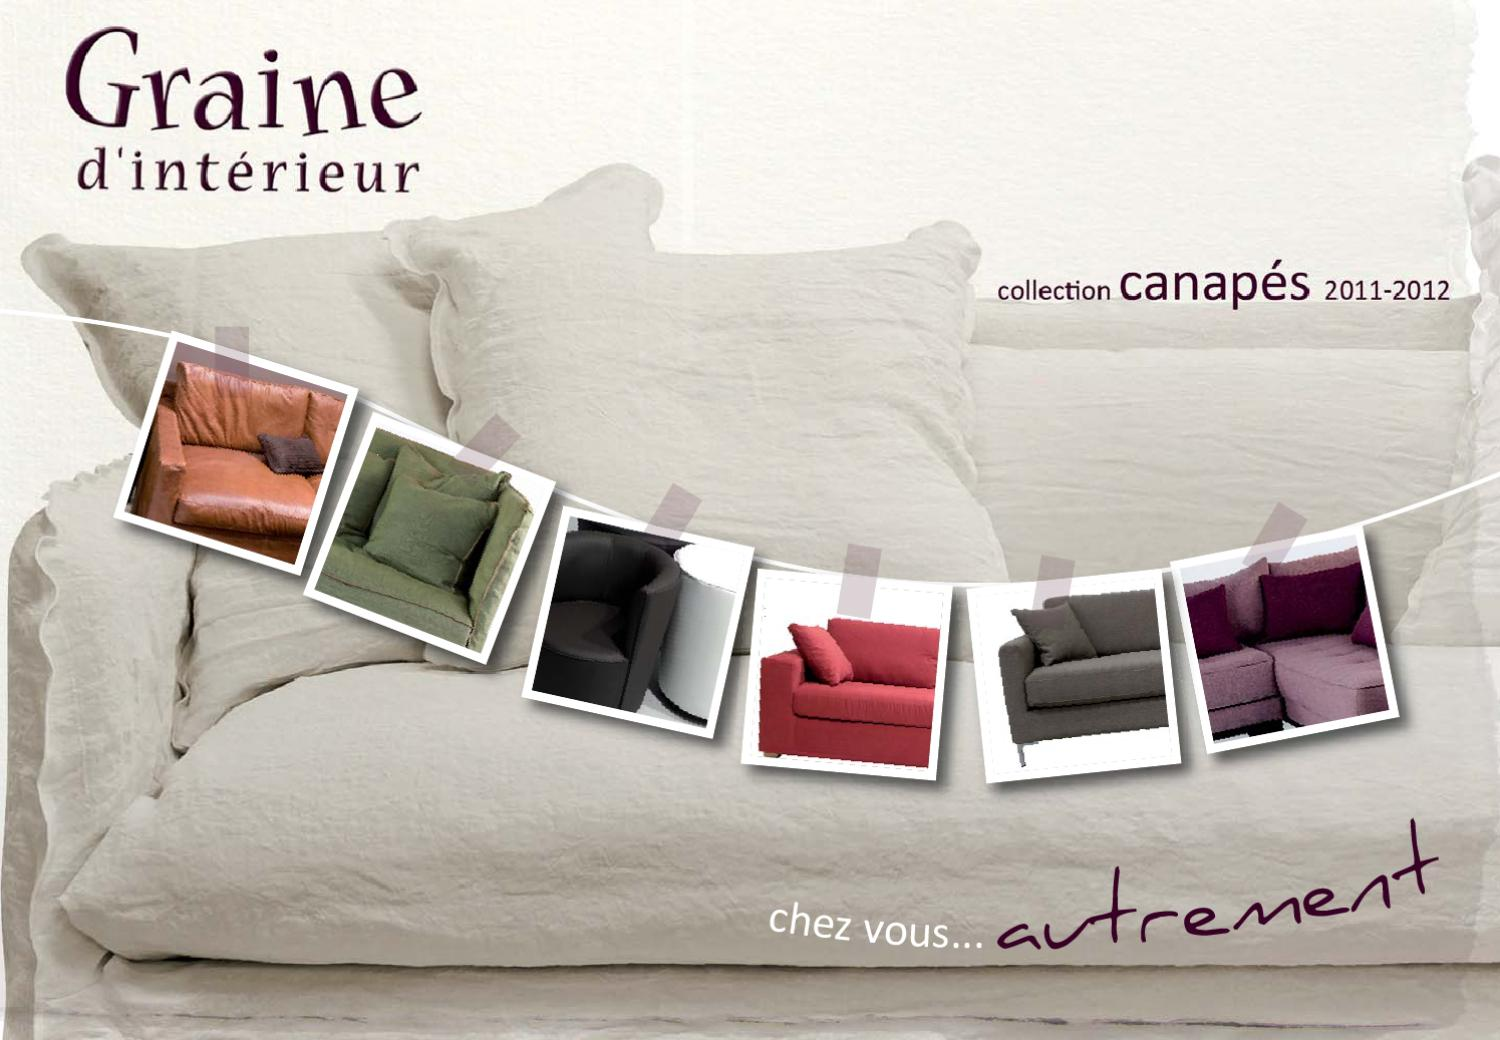 canap s 2011 2012 by graine d 39 int rieur issuu. Black Bedroom Furniture Sets. Home Design Ideas